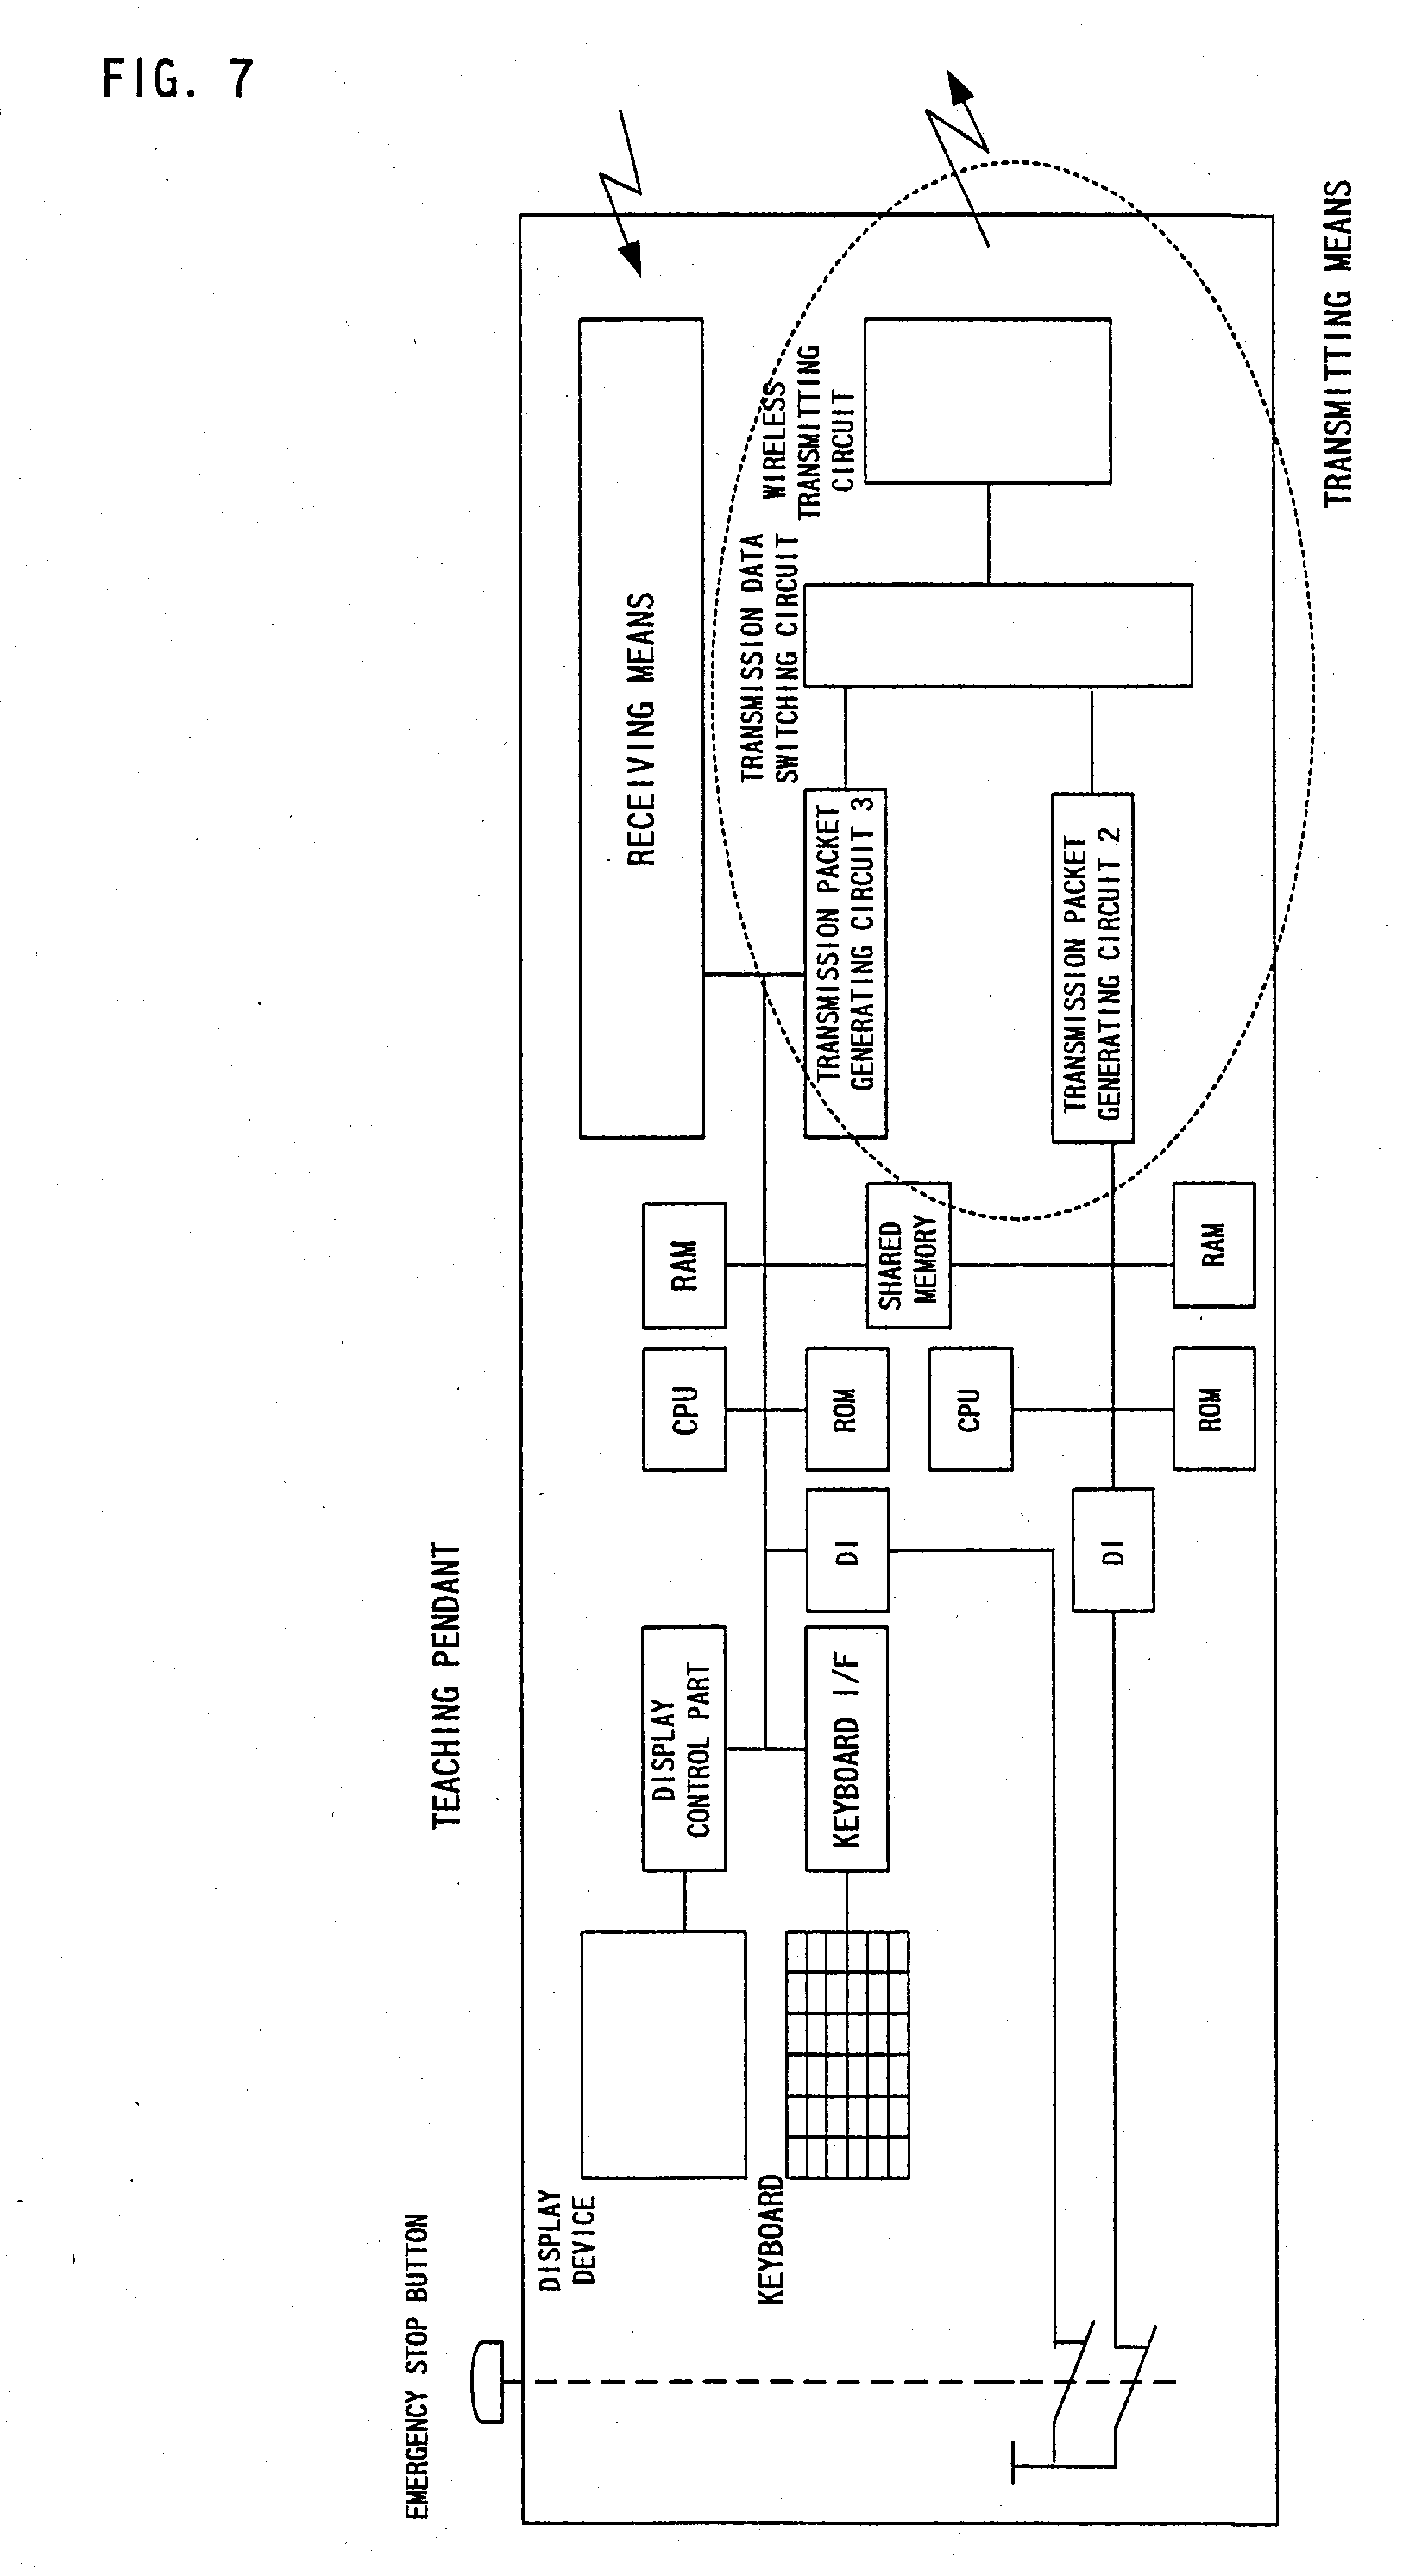 Outstanding Patent Us20040078116 Robot Controller Google Patents Wiring Cloud Overrenstrafr09Org